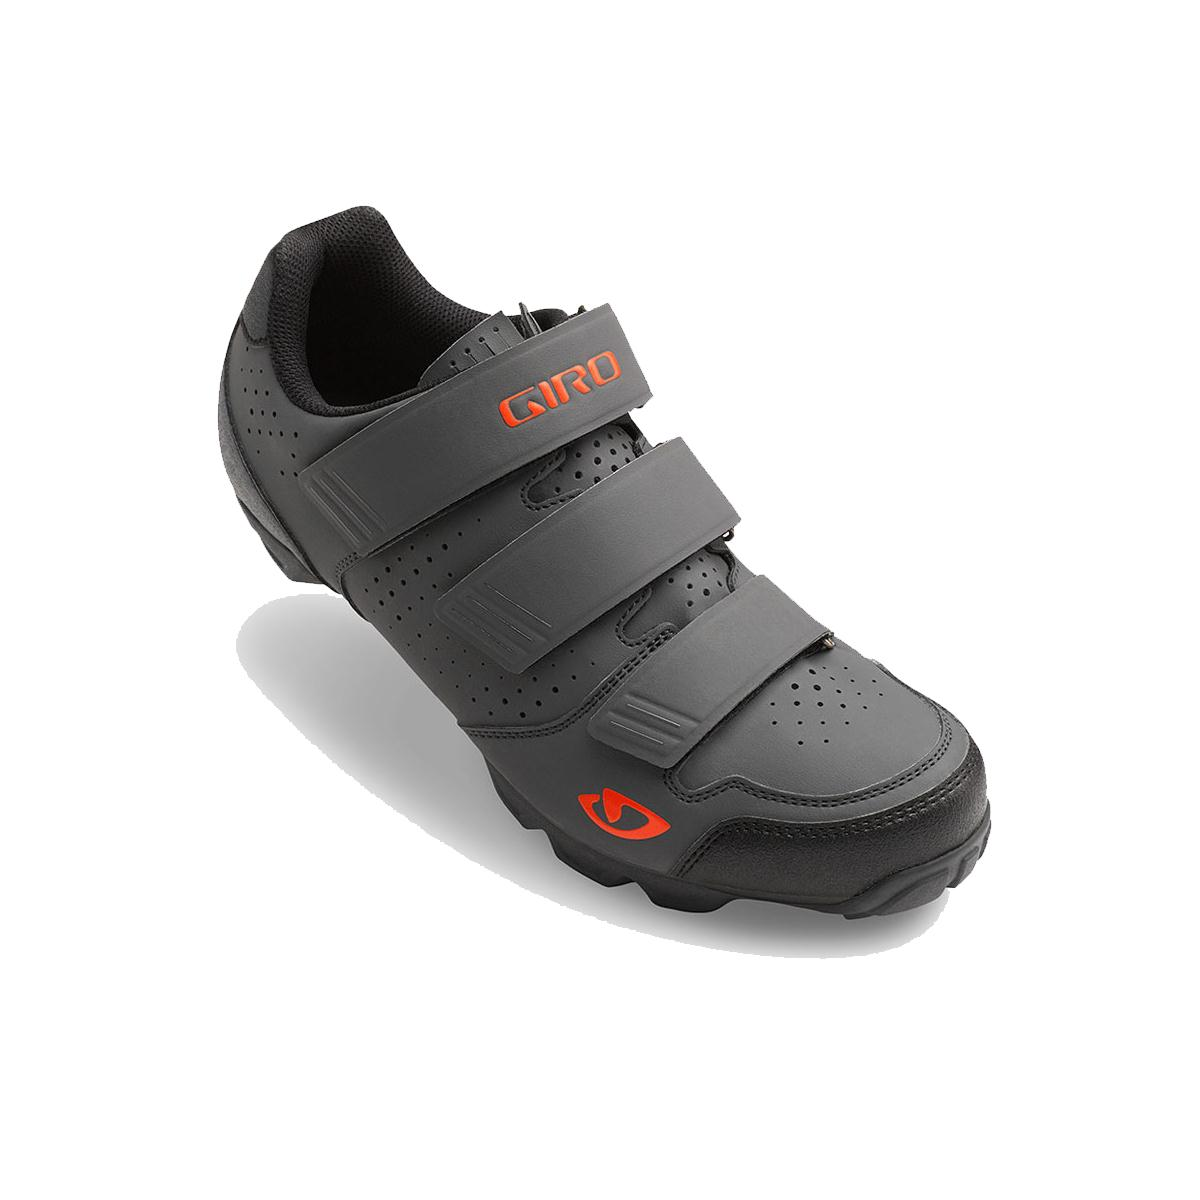 GIRO Carbide R MTB Cycling Shoes 2016 Dark Shadow/Flame Orange 41